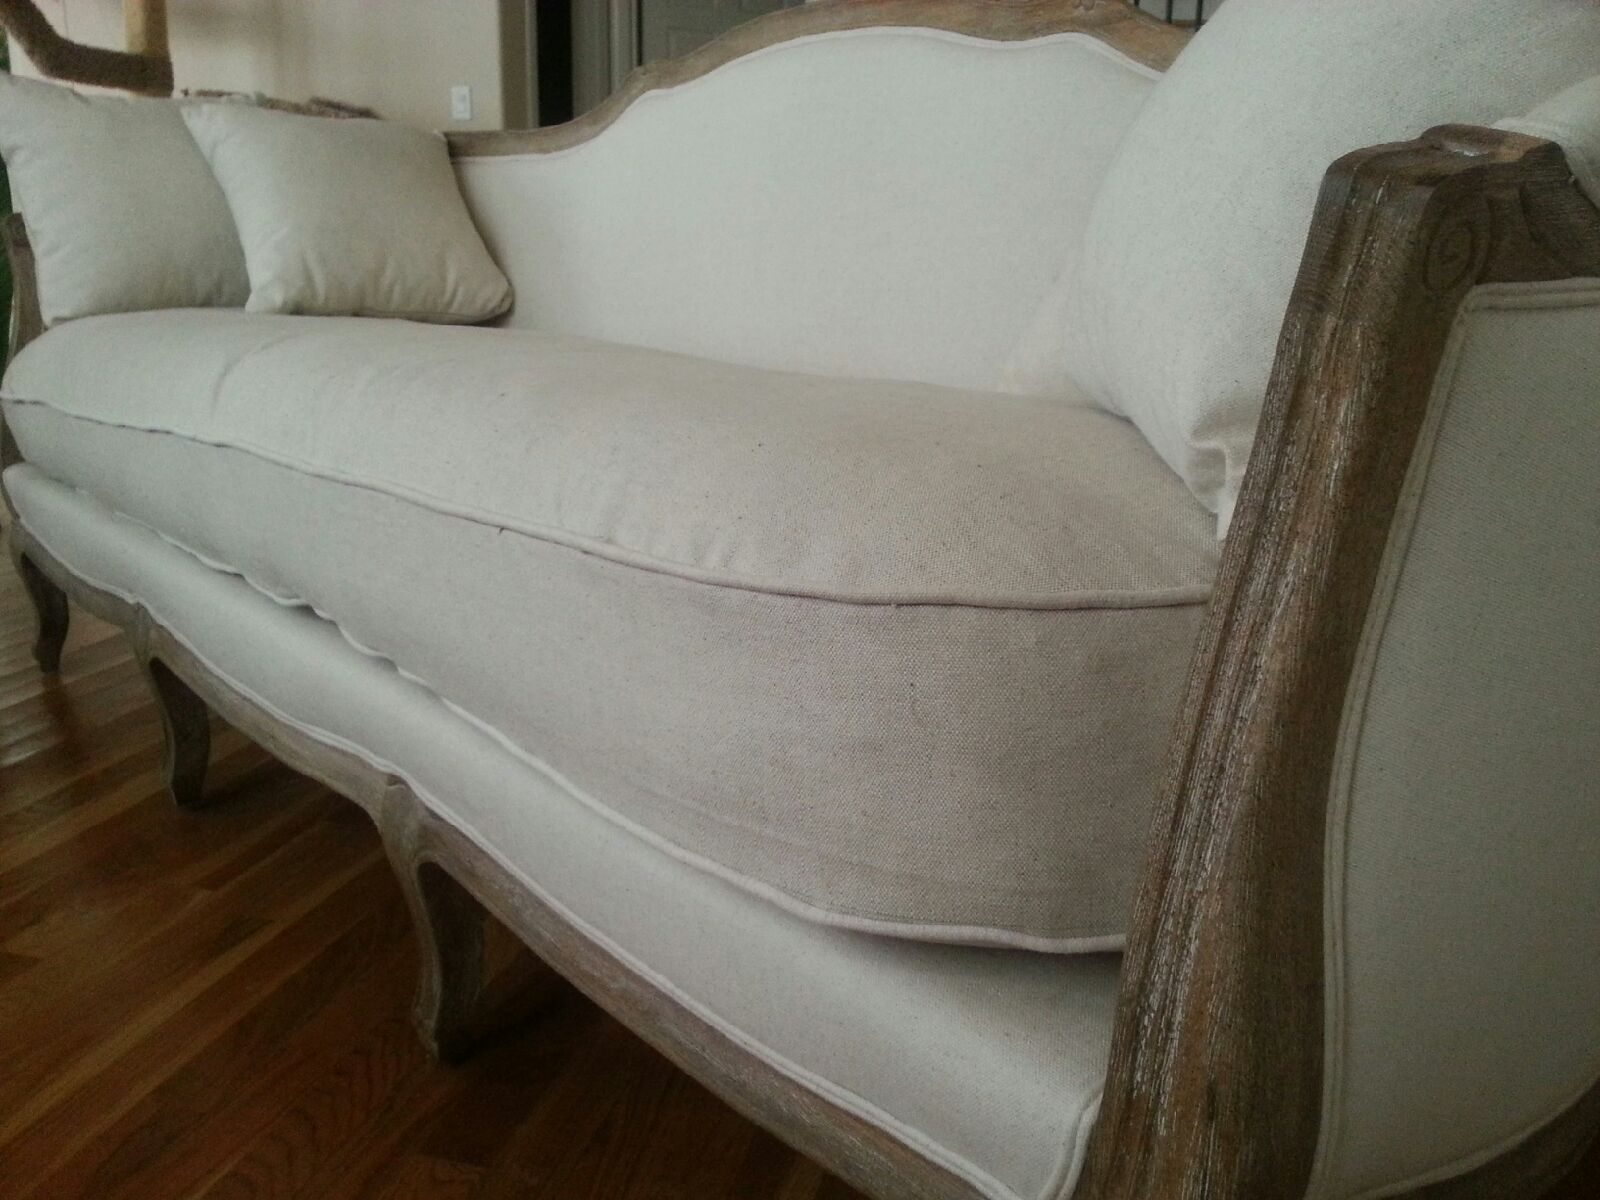 recover sofa cushions contemporary leather sectional reupholster couch box cushion  sewing projects